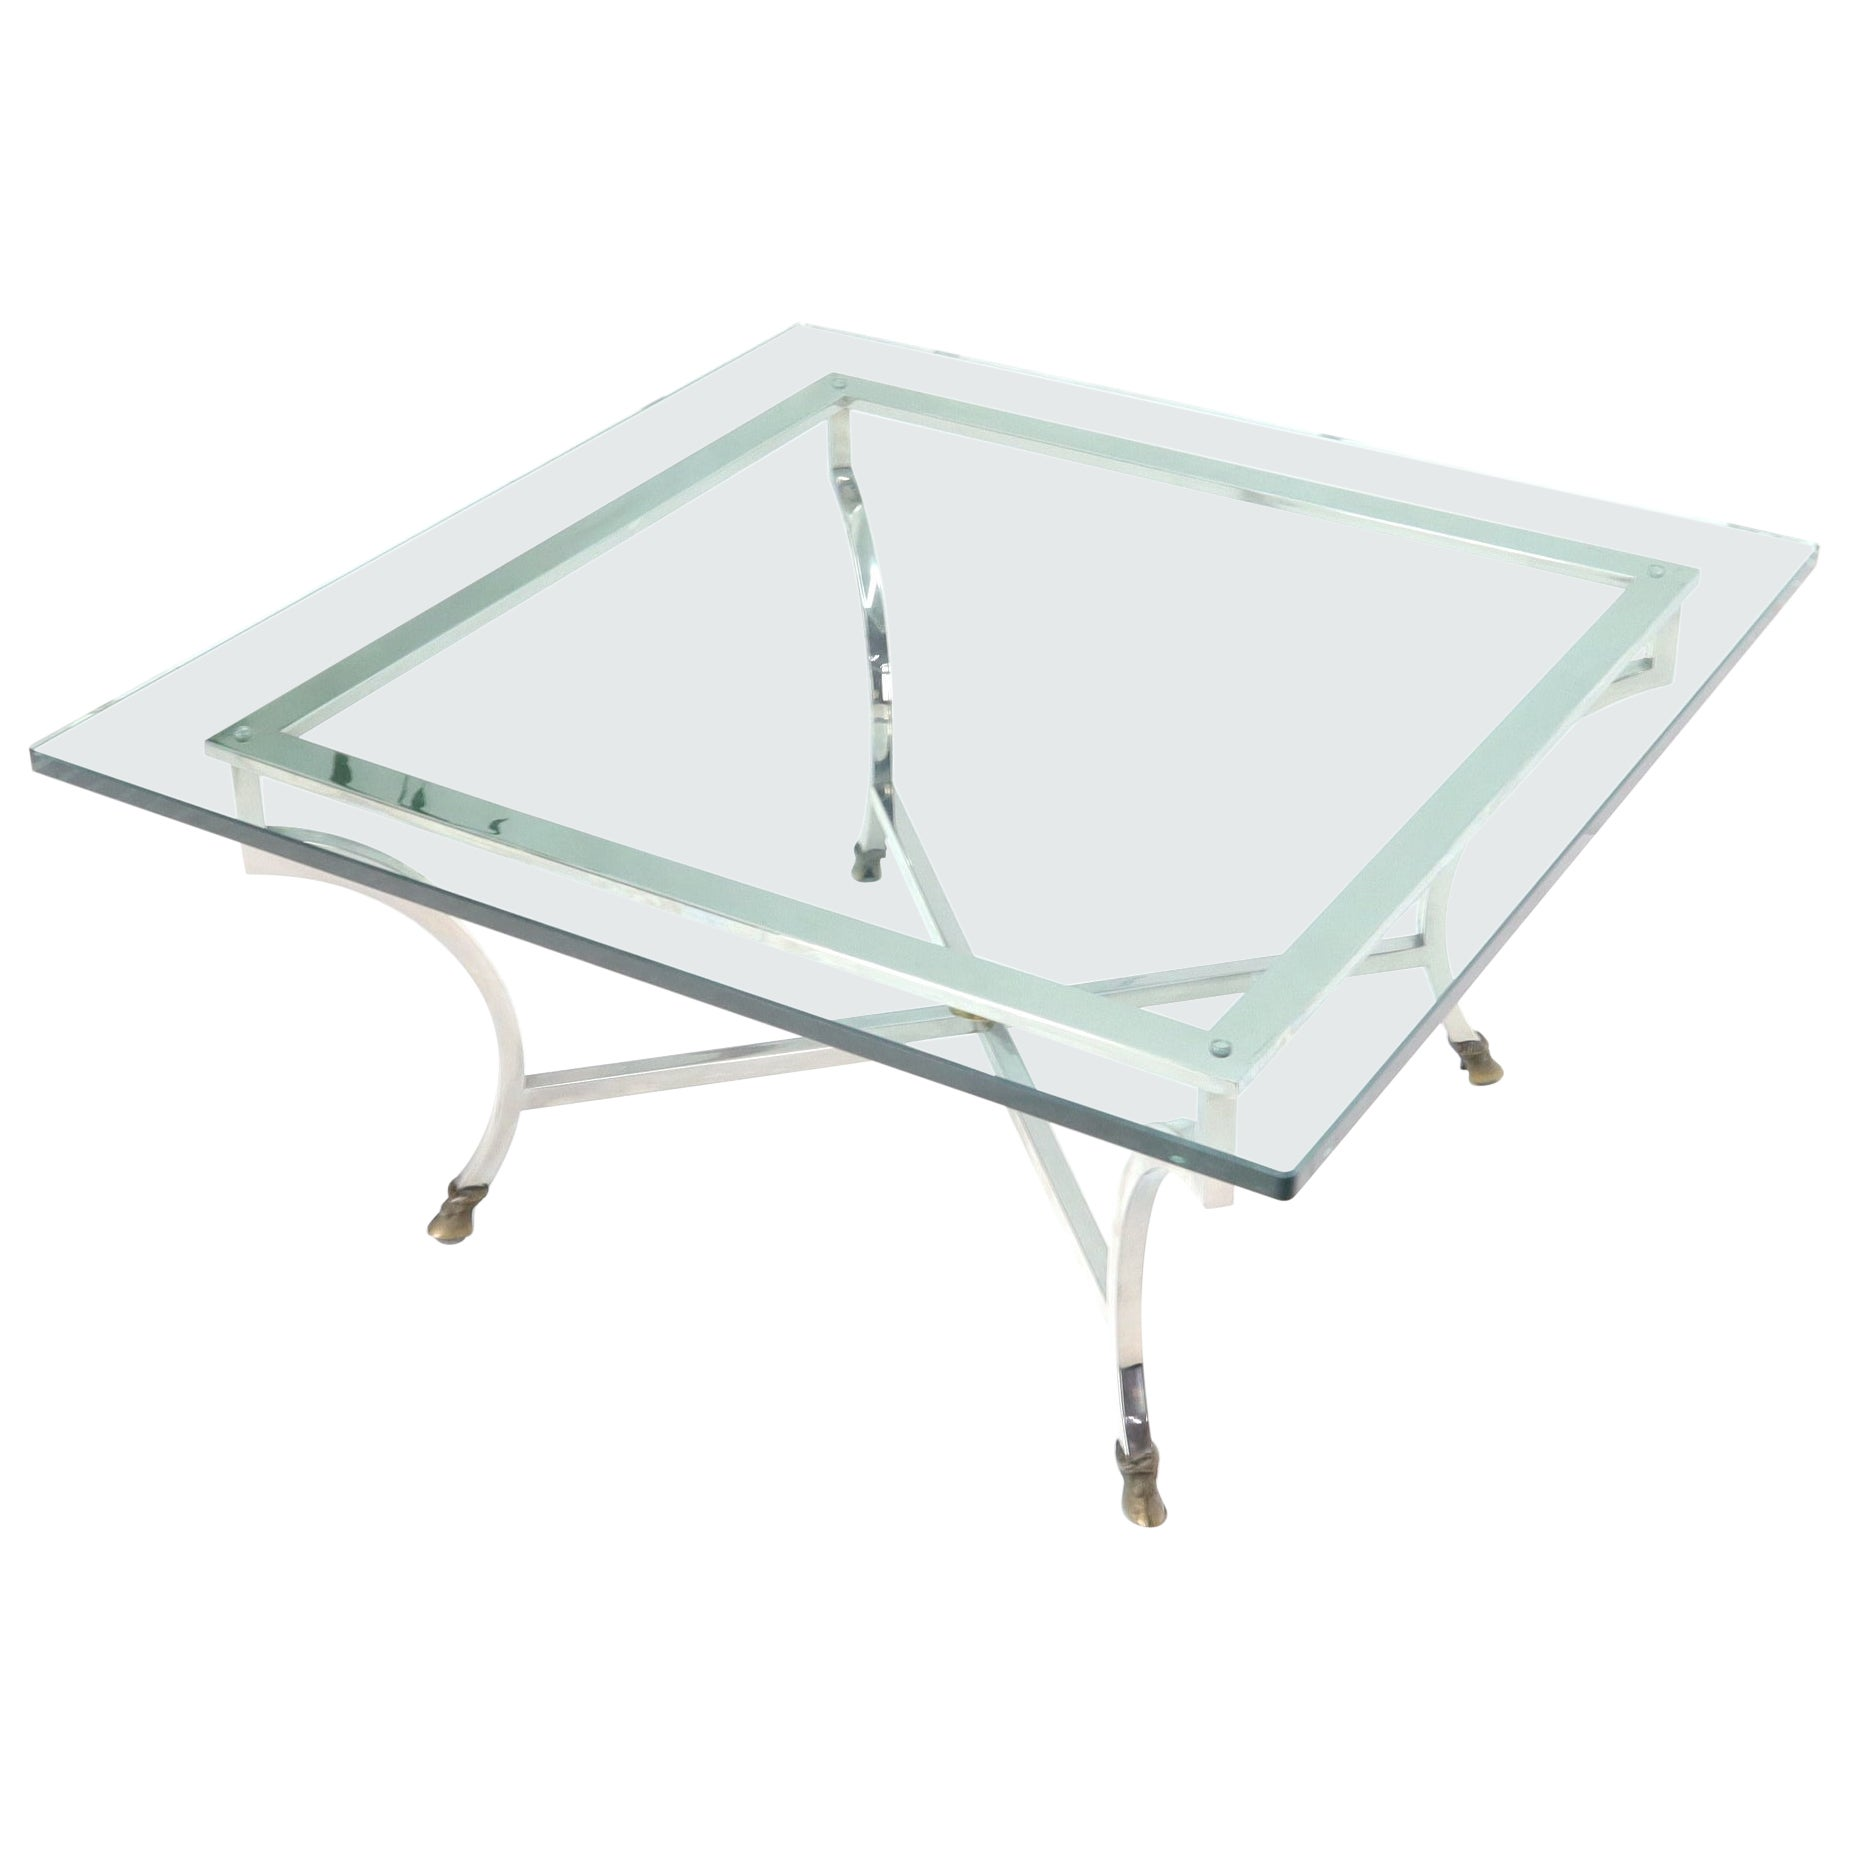 Square Chrome and Brass Hoof Feet Base Thick Glass Top Coffee Table